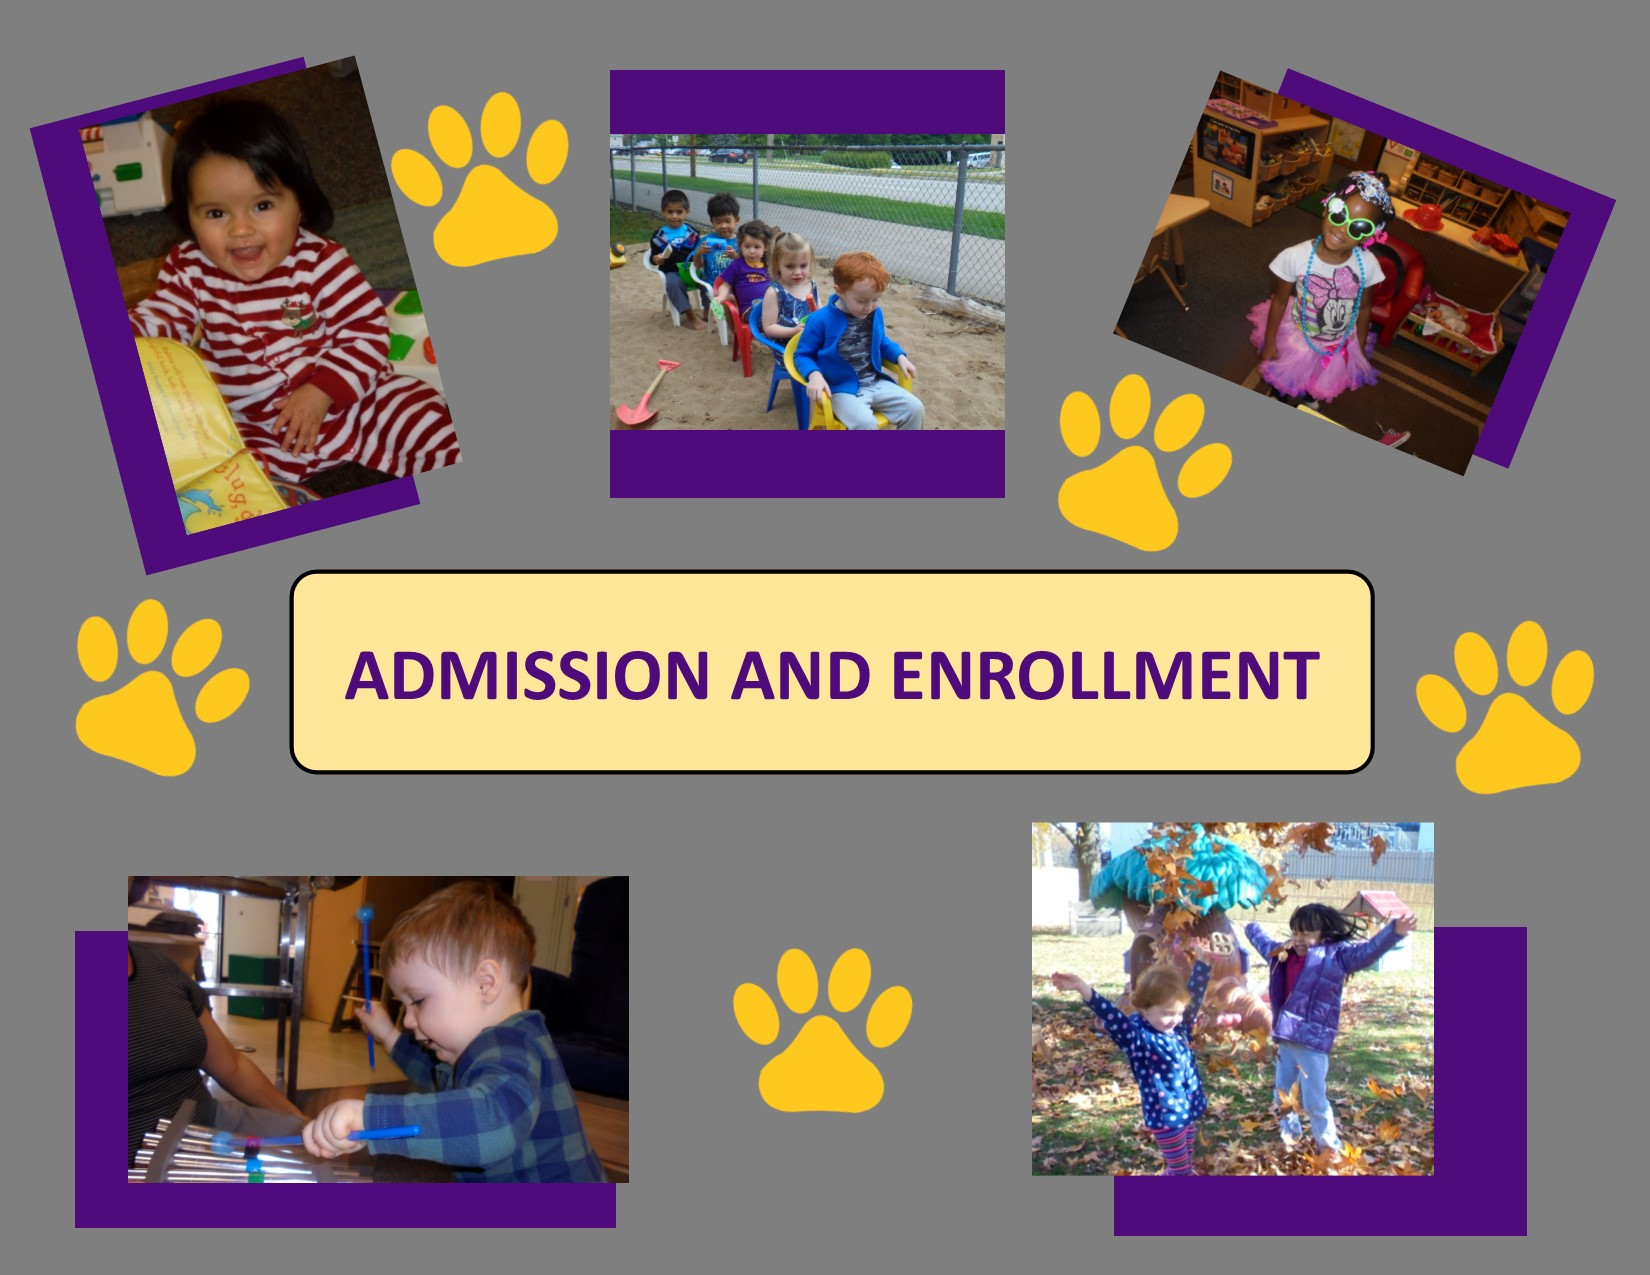 admission and enrollment